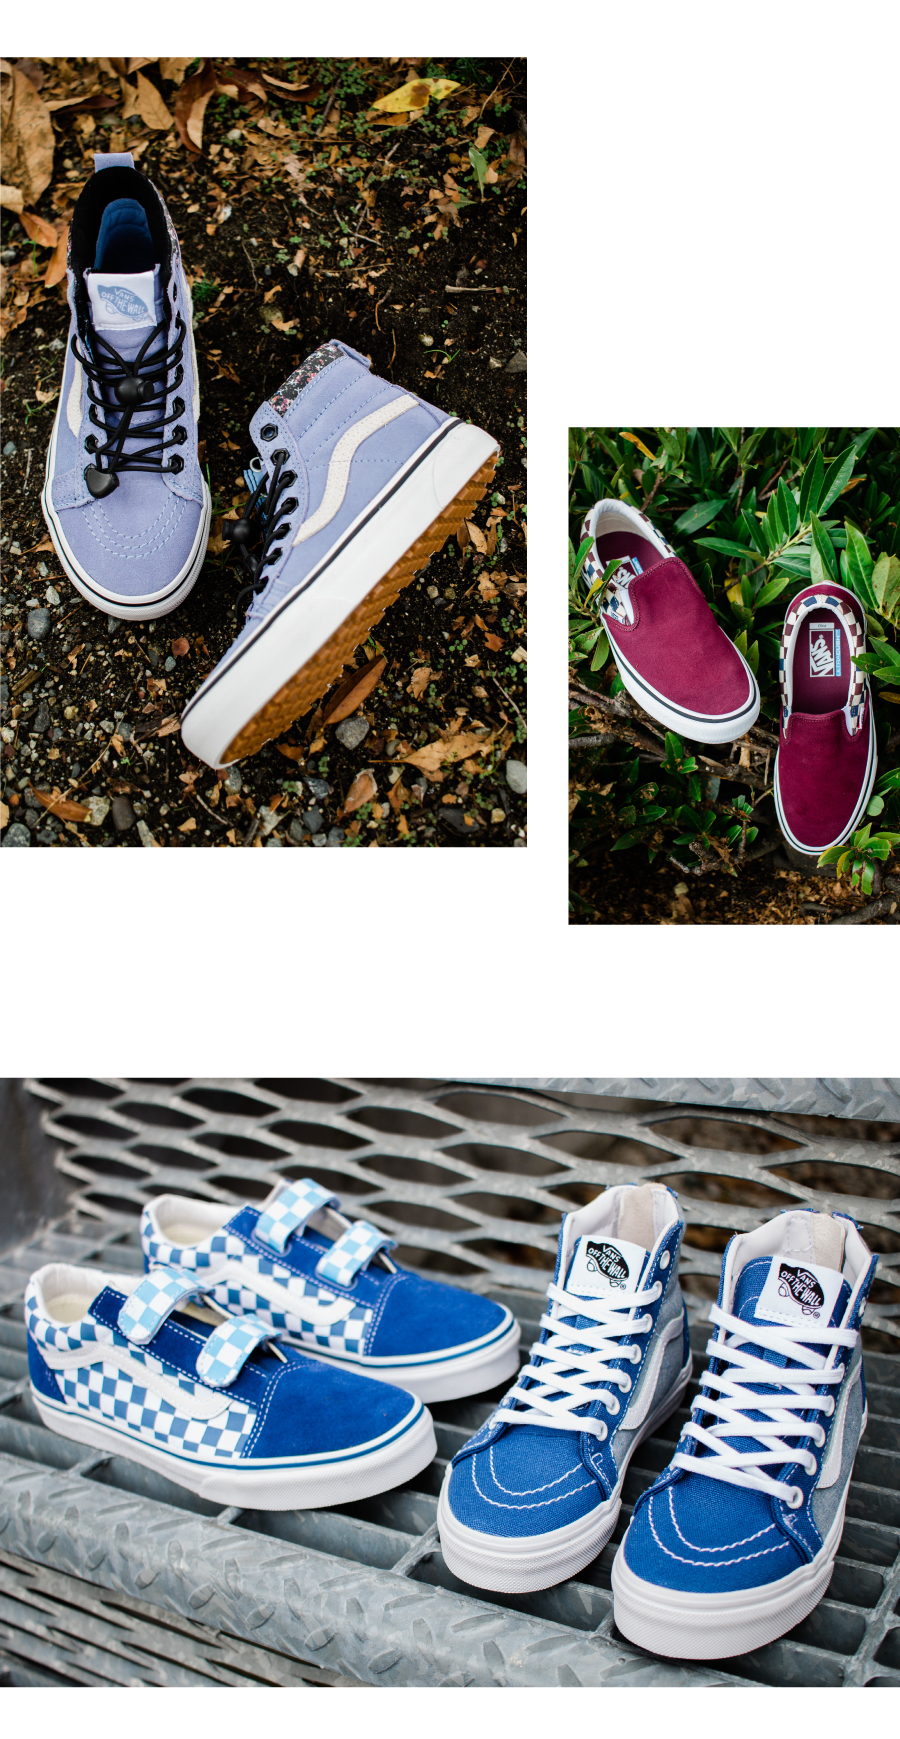 Youth Boy's Vans Shoes